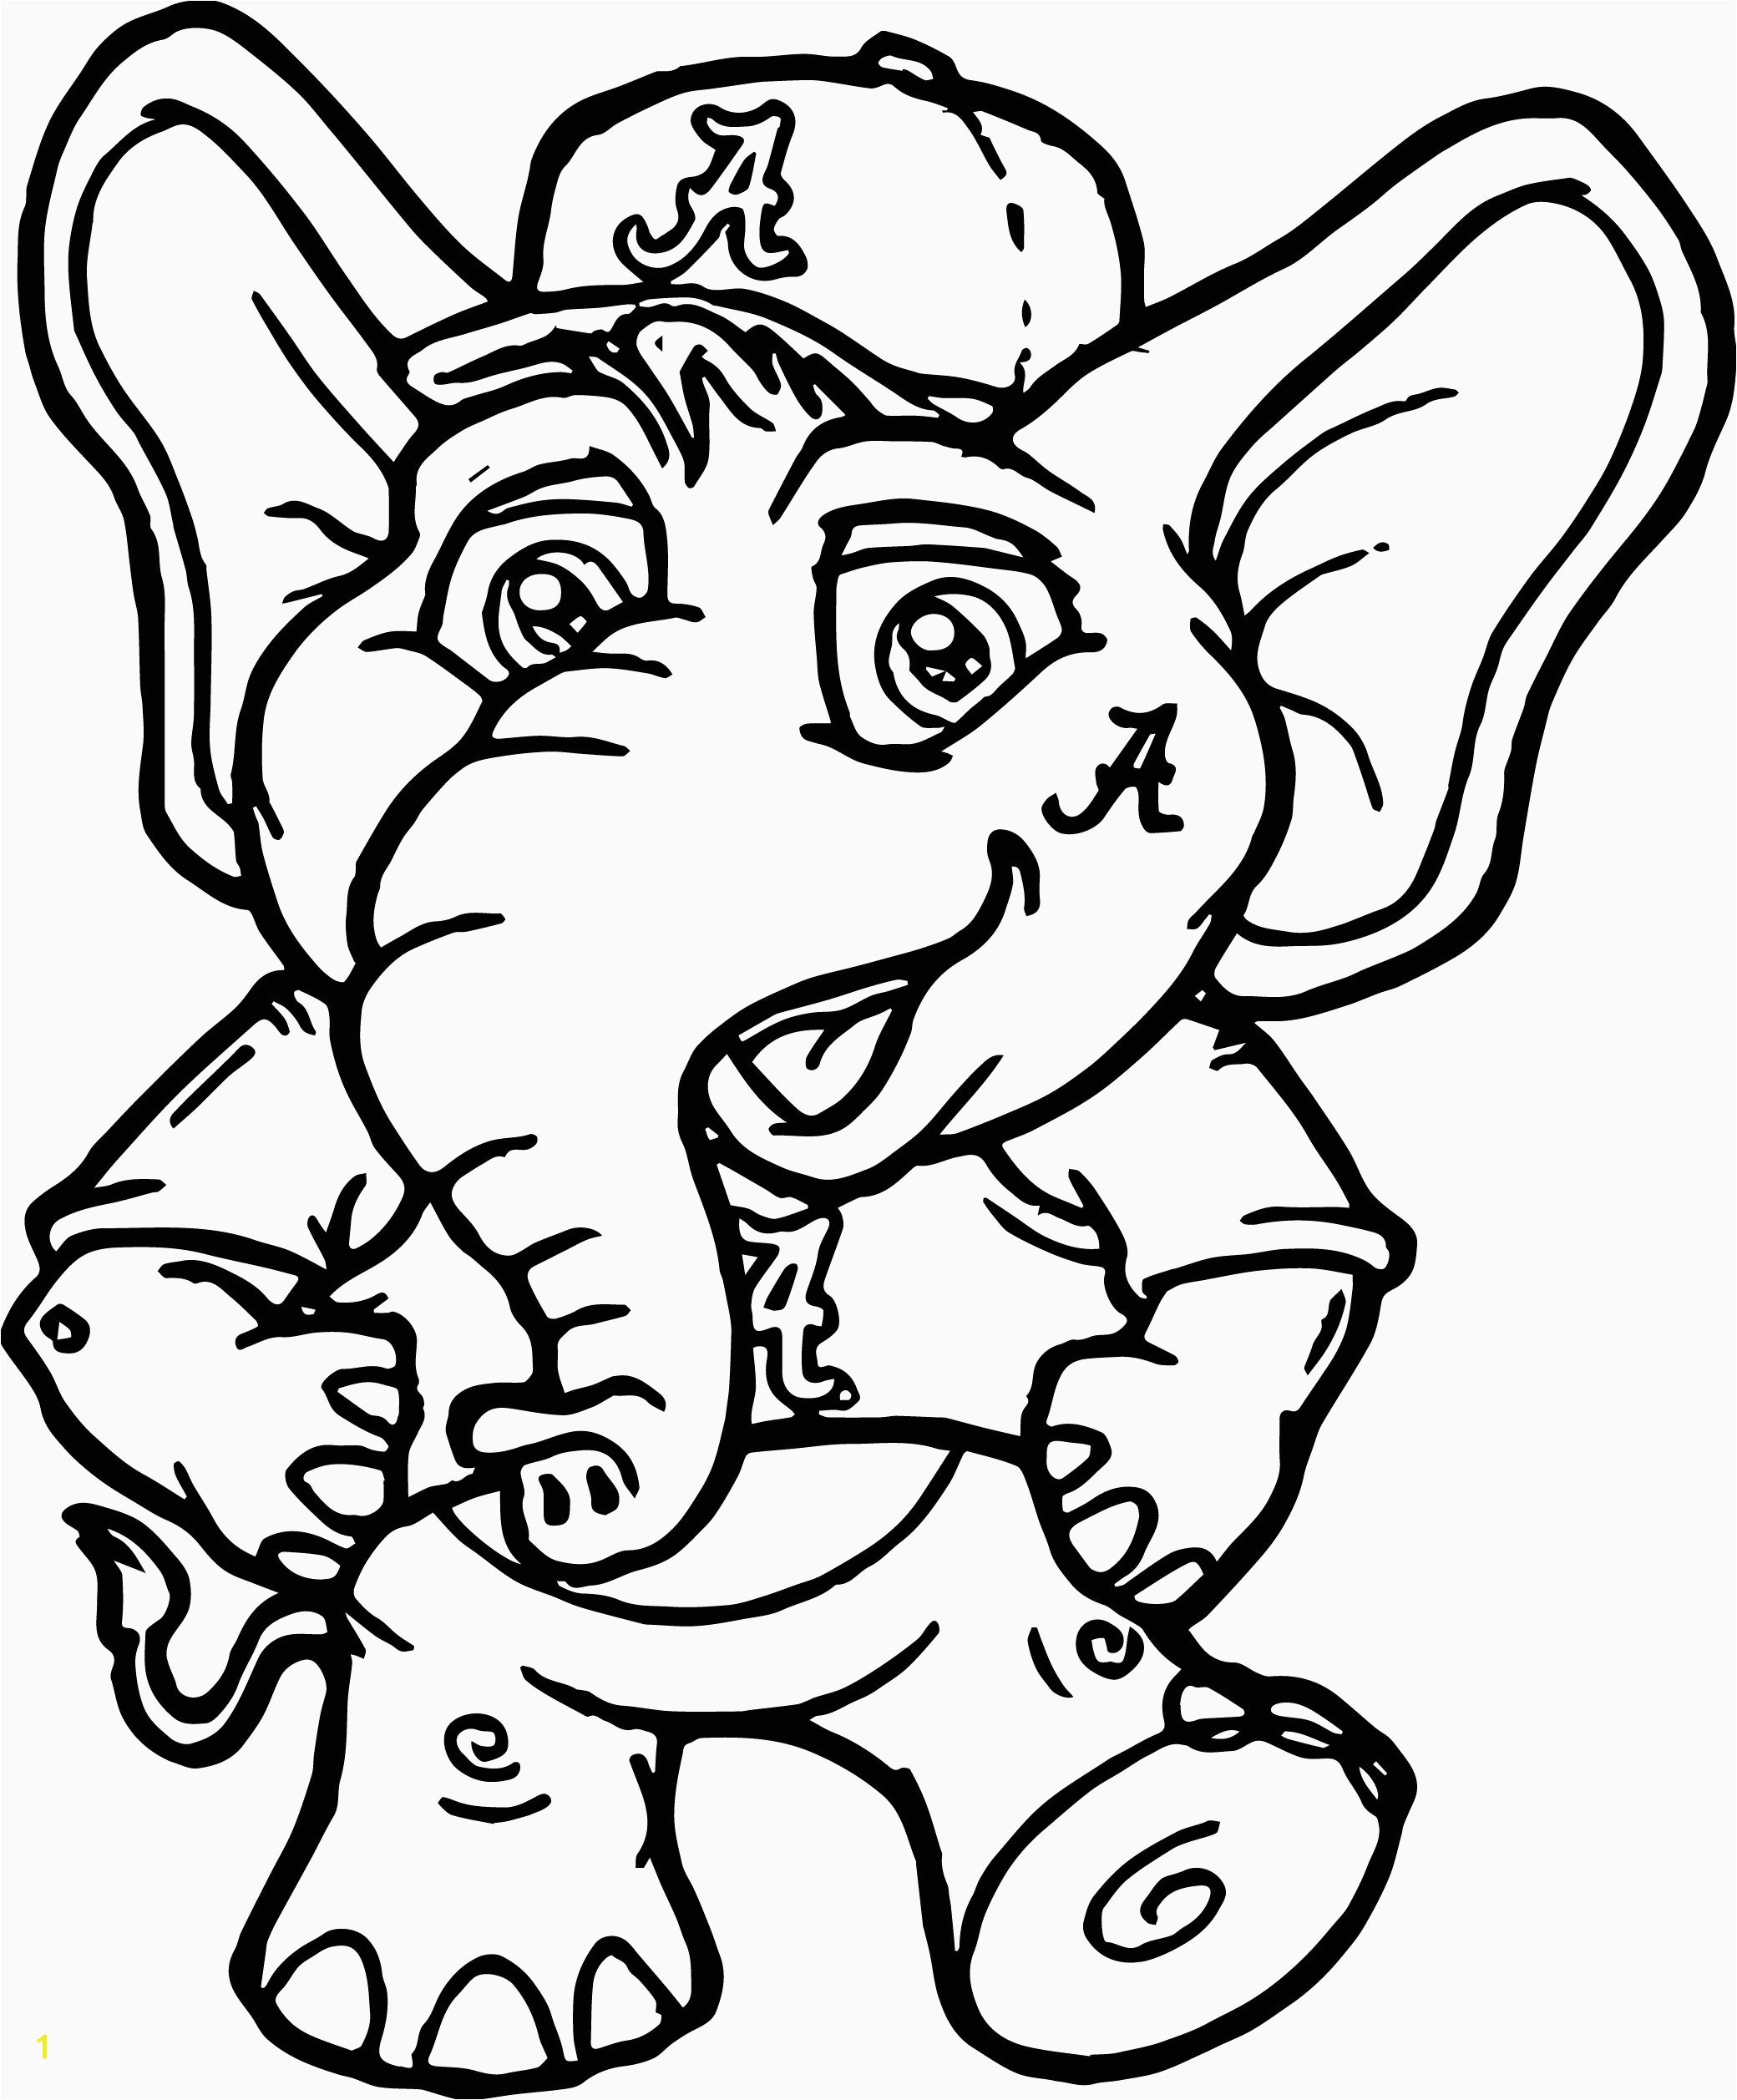 Alabama Coloring Pages Luxury Football Coloring Page Fresh Coloring Pages Alabama Football